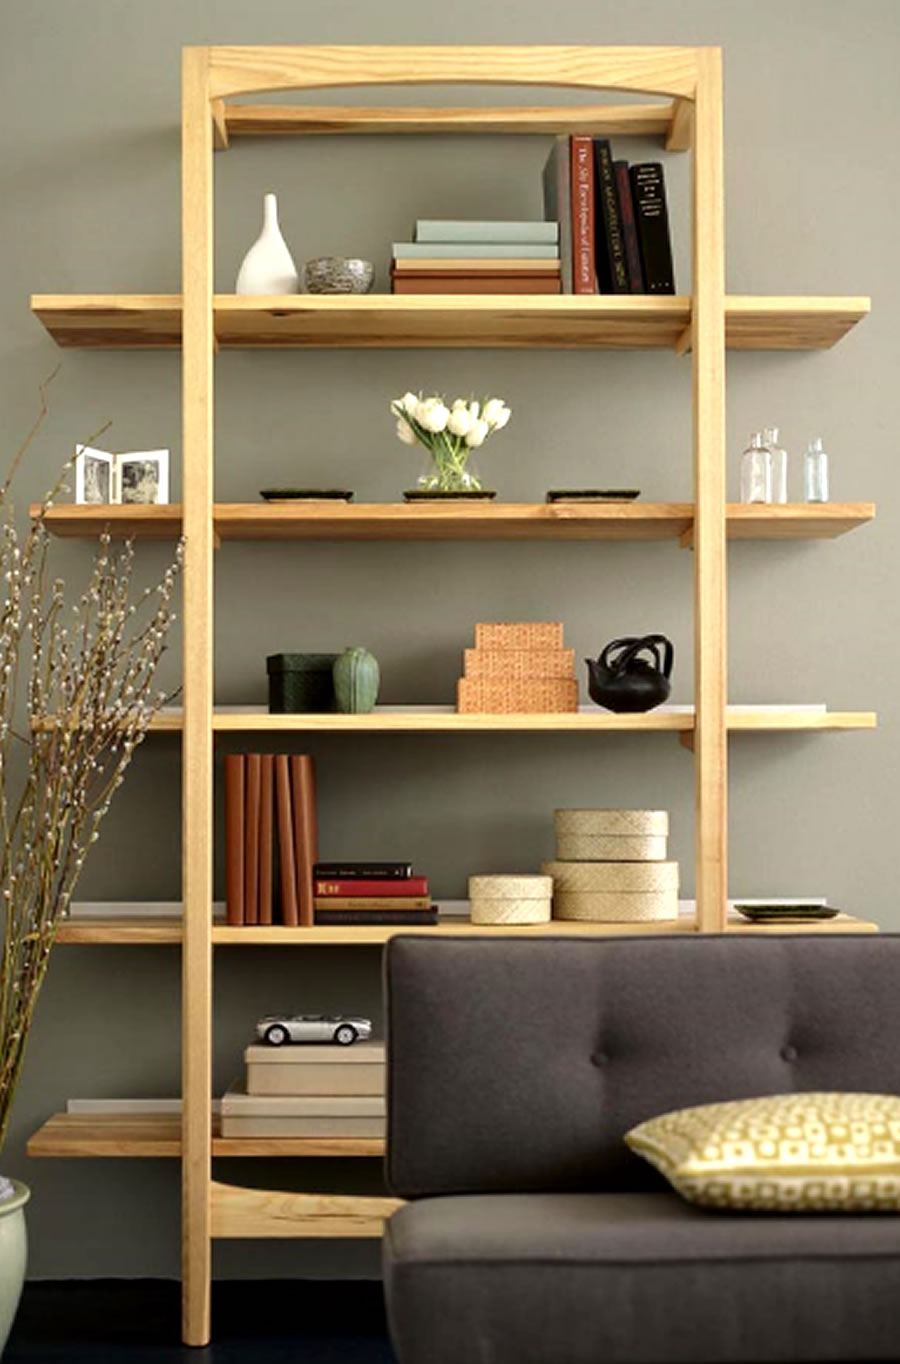 Wand Bücherregal Modernes Regal Als Deko-idee | Ideen.top